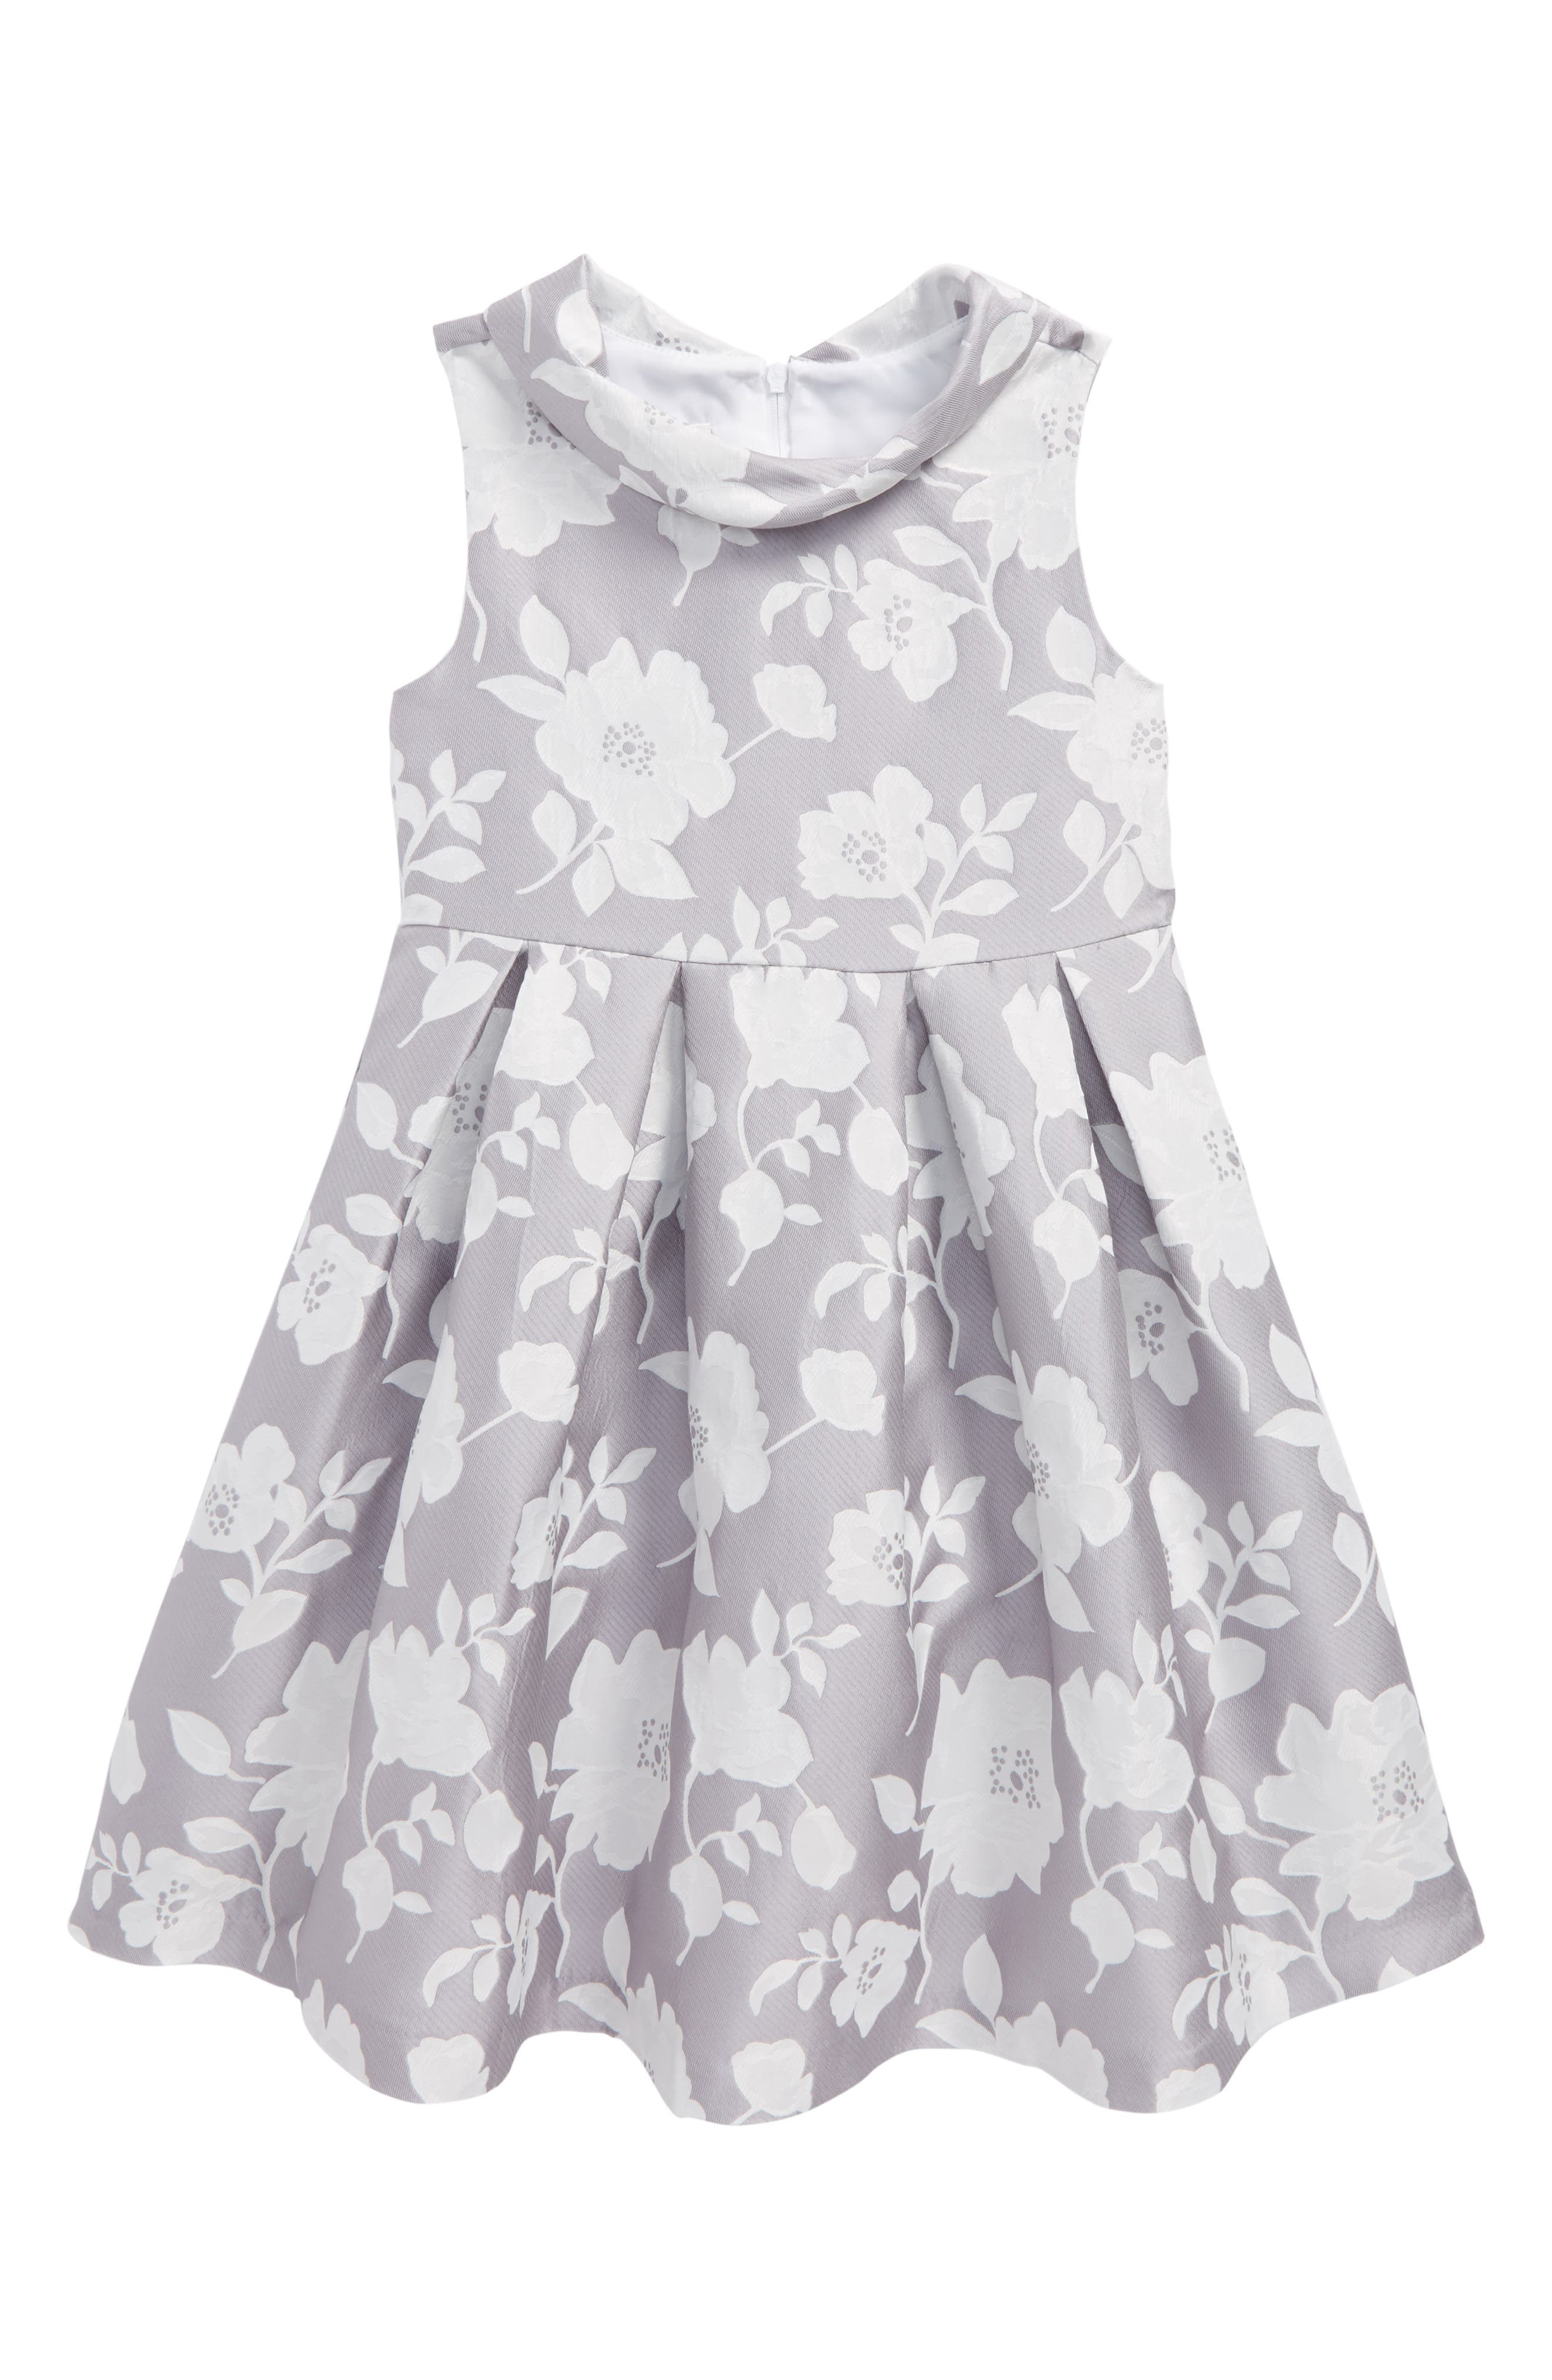 Iris & Ivy Floral Jacquard Dress (Toddler Girls & Little Girls)